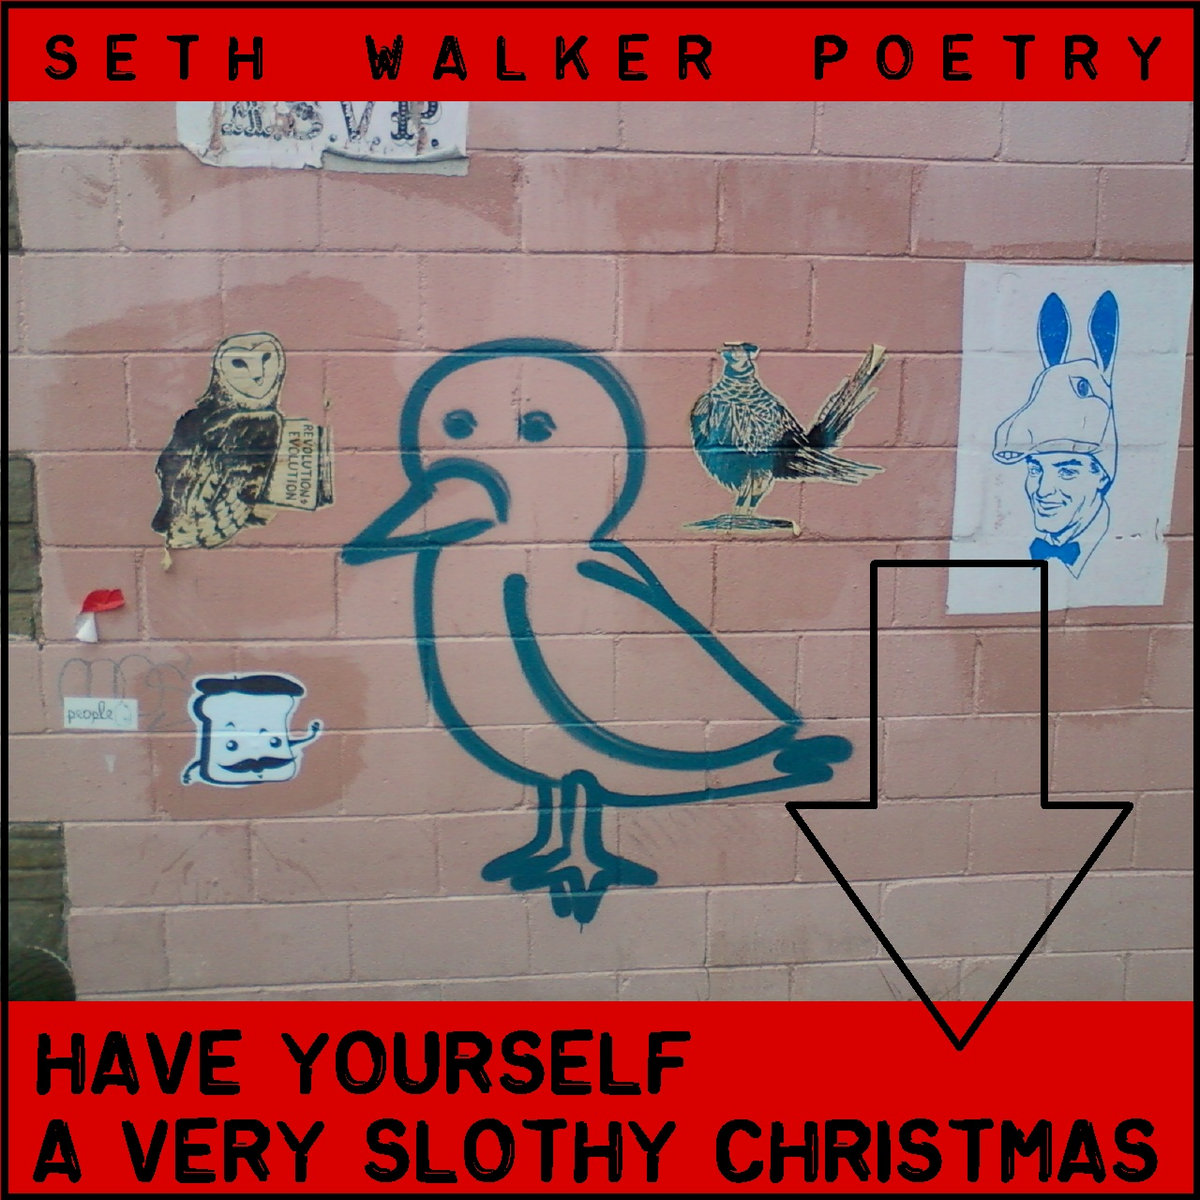 have yourself a very merry christmas ajna wysowski from a very slothy christmas by seth walker - Have Yourself A Very Merry Christmas